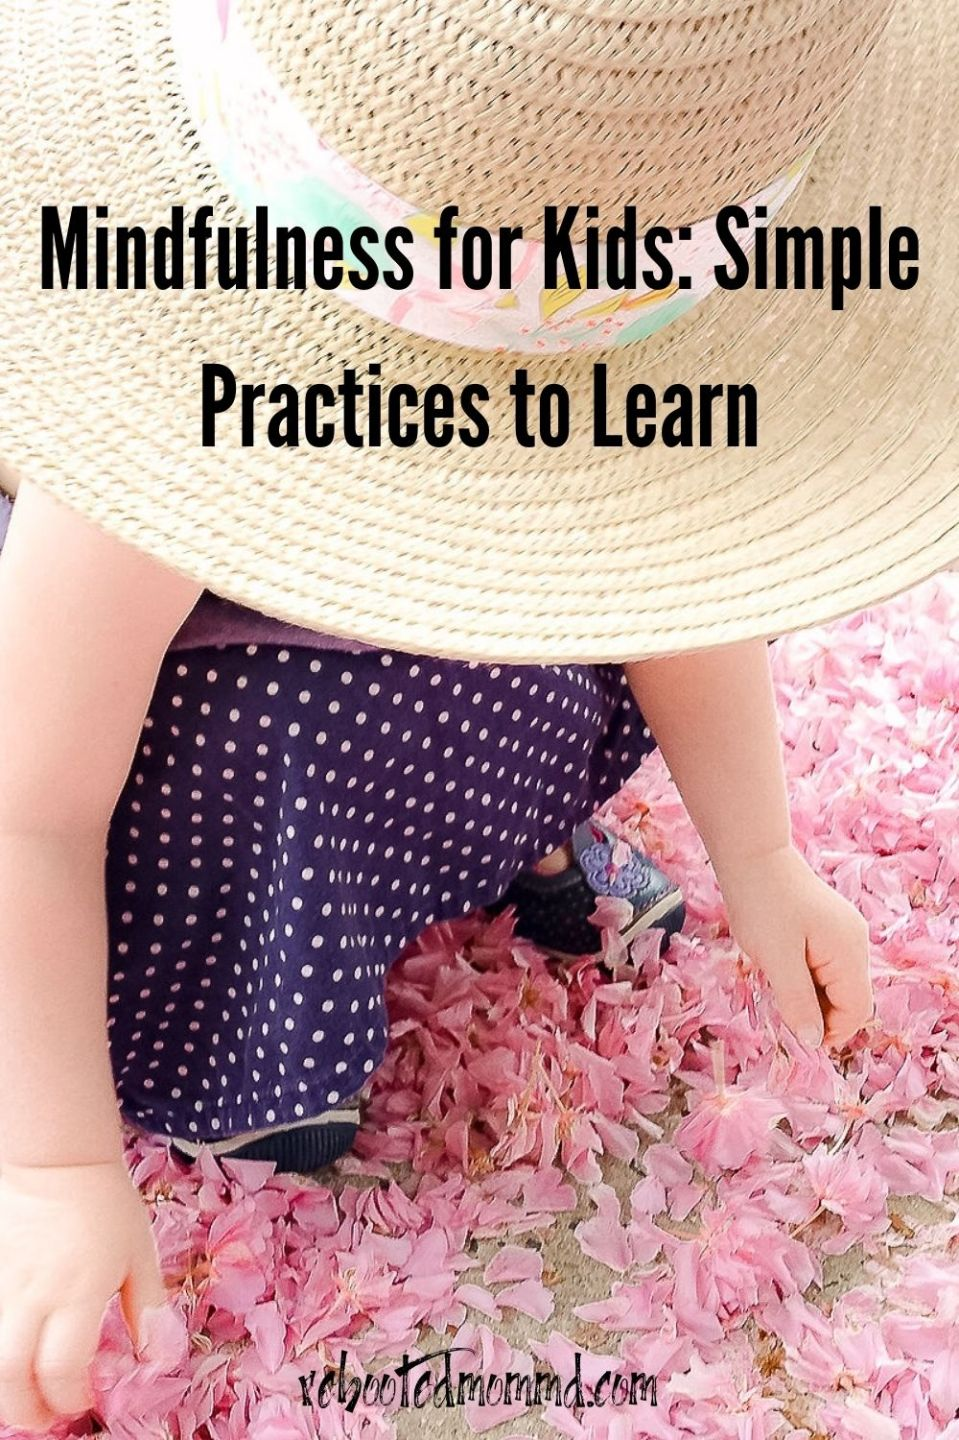 Mindfulness for Kids: Simple Practices to Learn